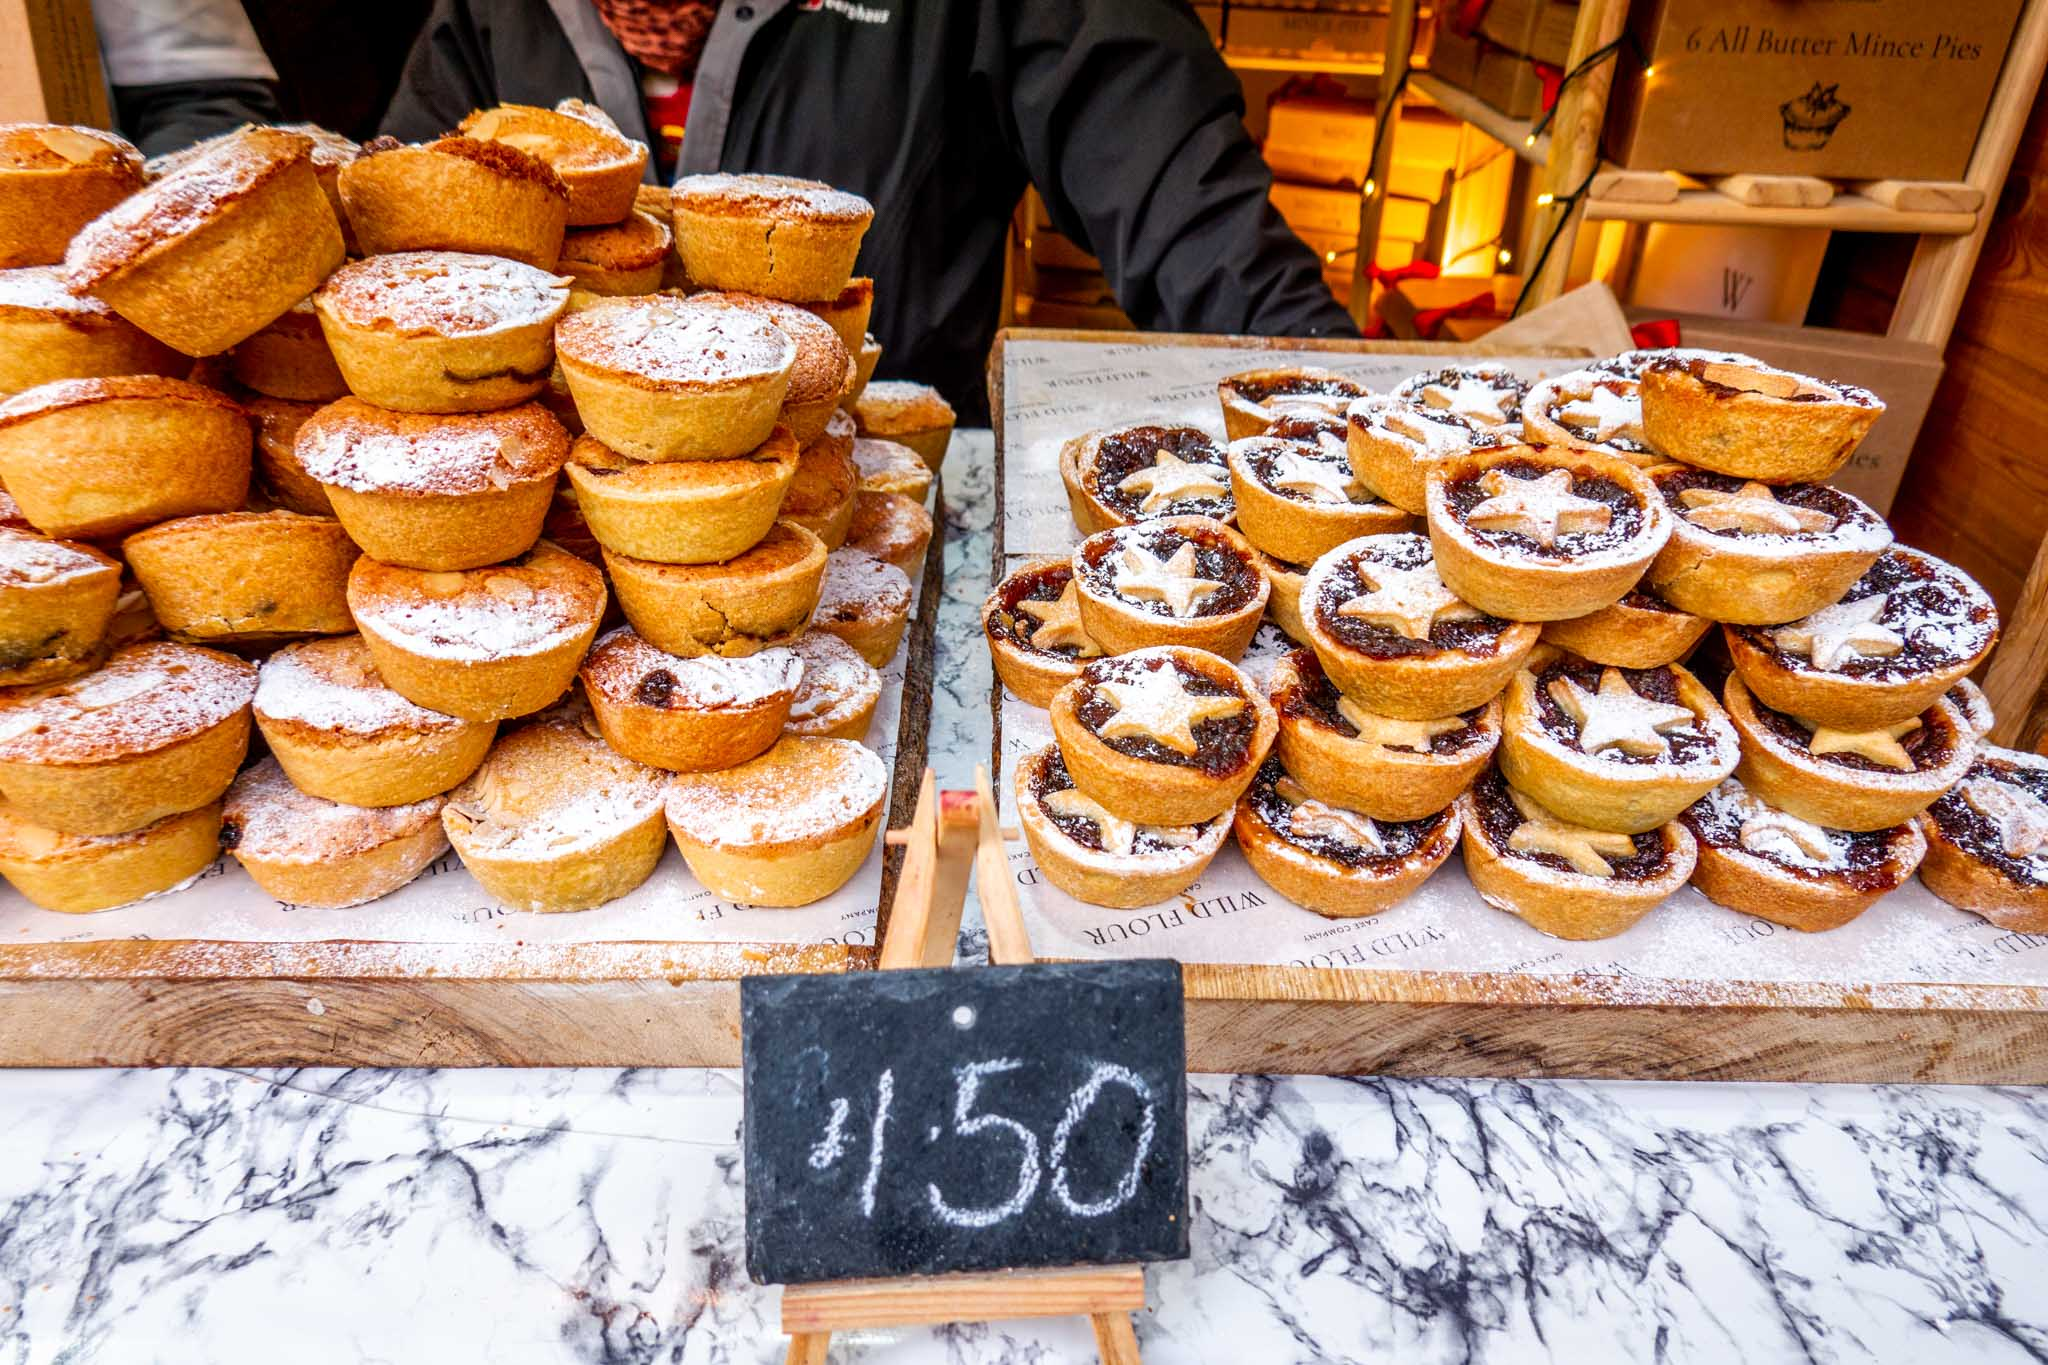 Stacks of small mince pies for sale at the Christmas market in Bath UK